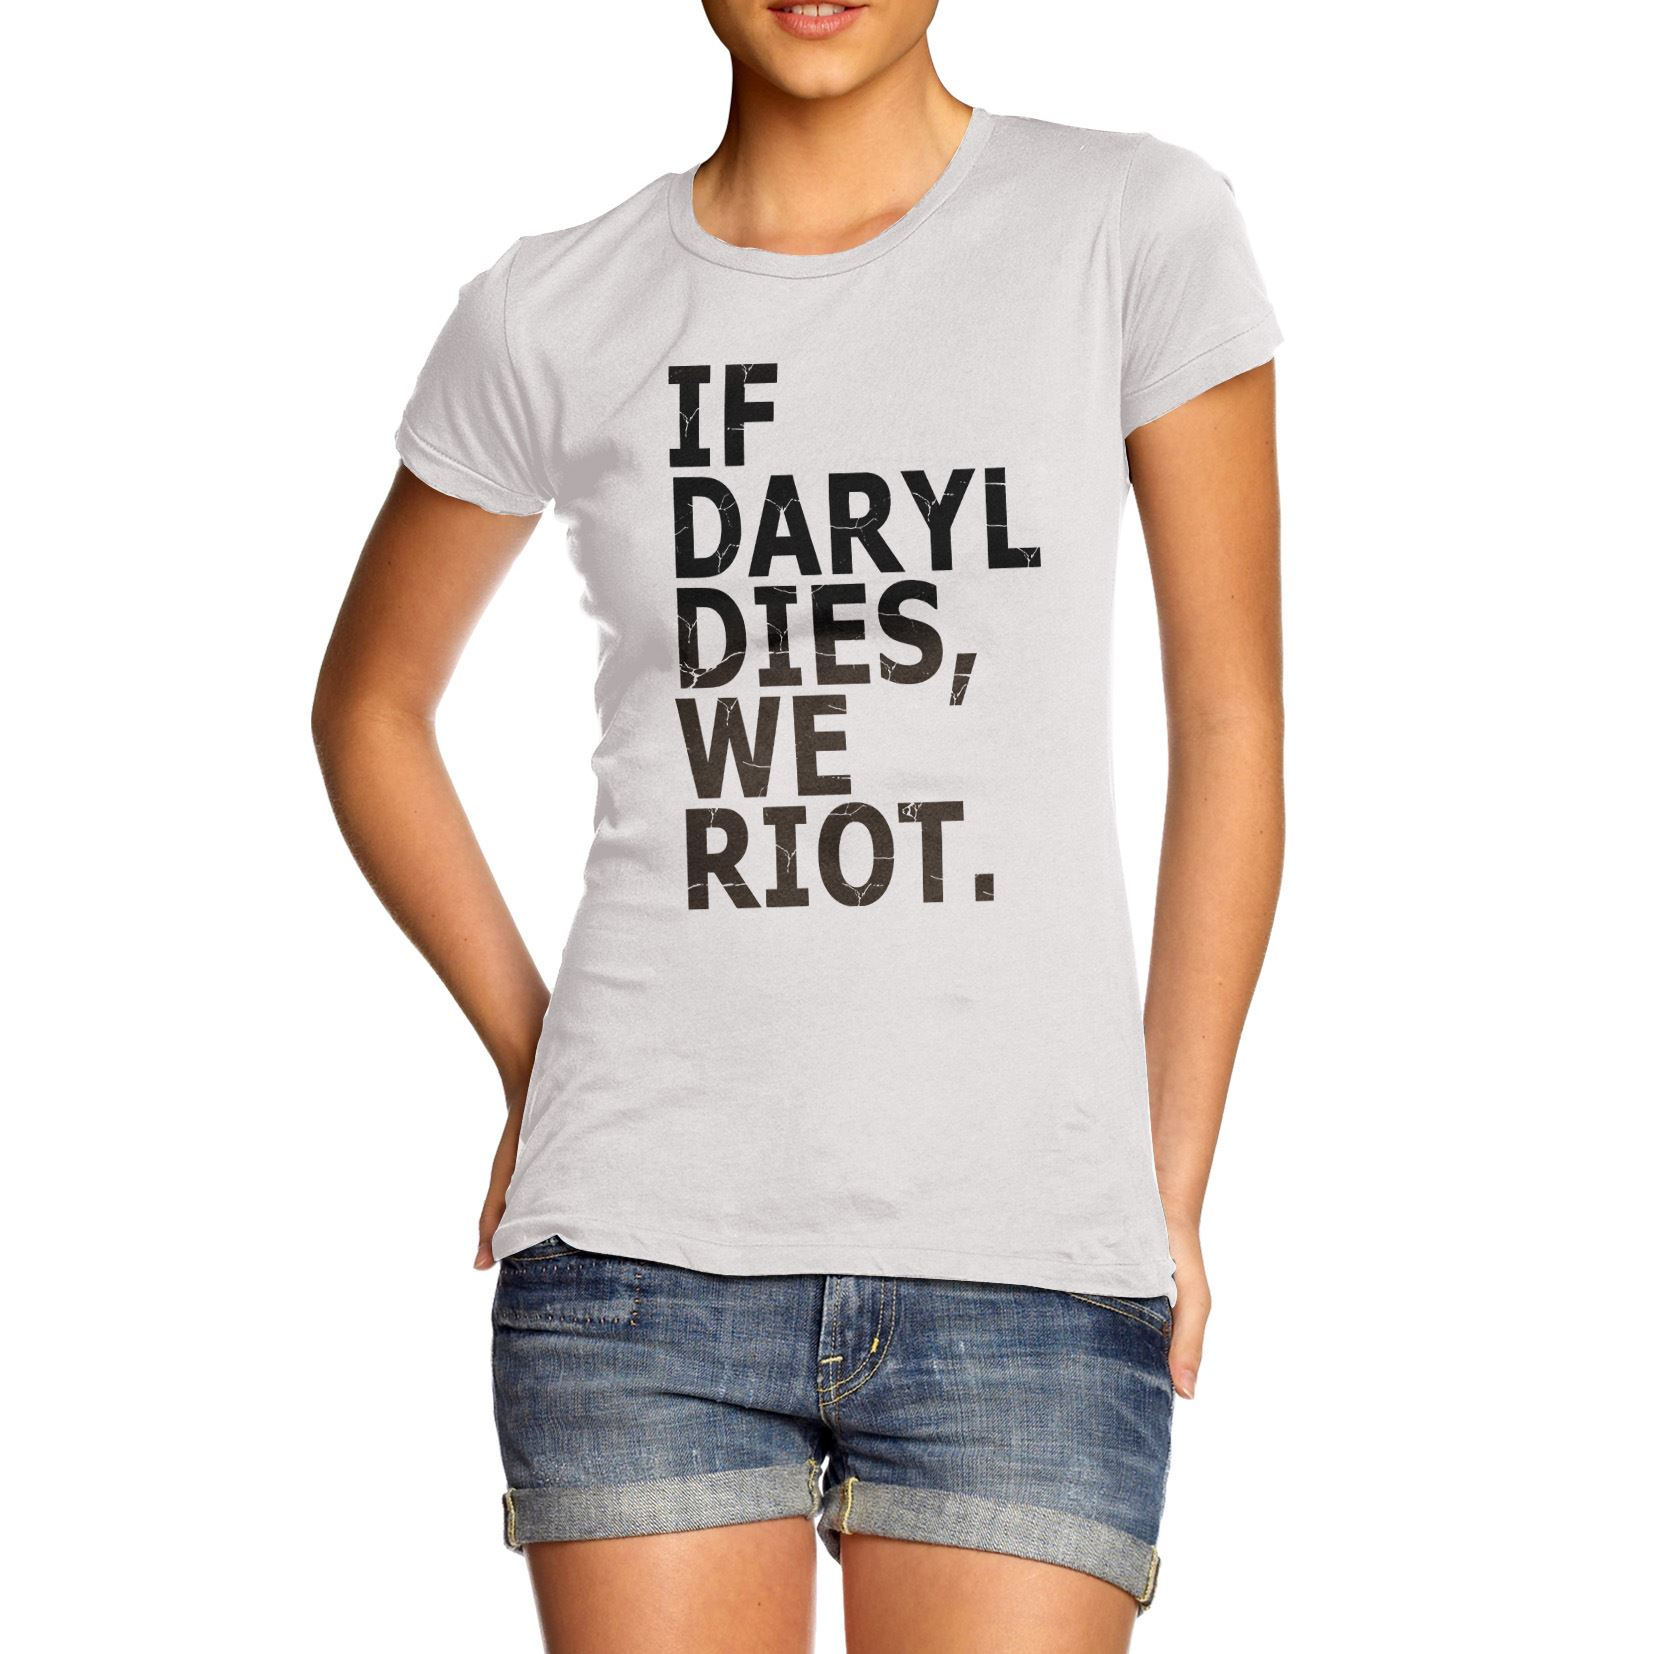 Daryl Dies Shirt Design-if-daryl-dies-we